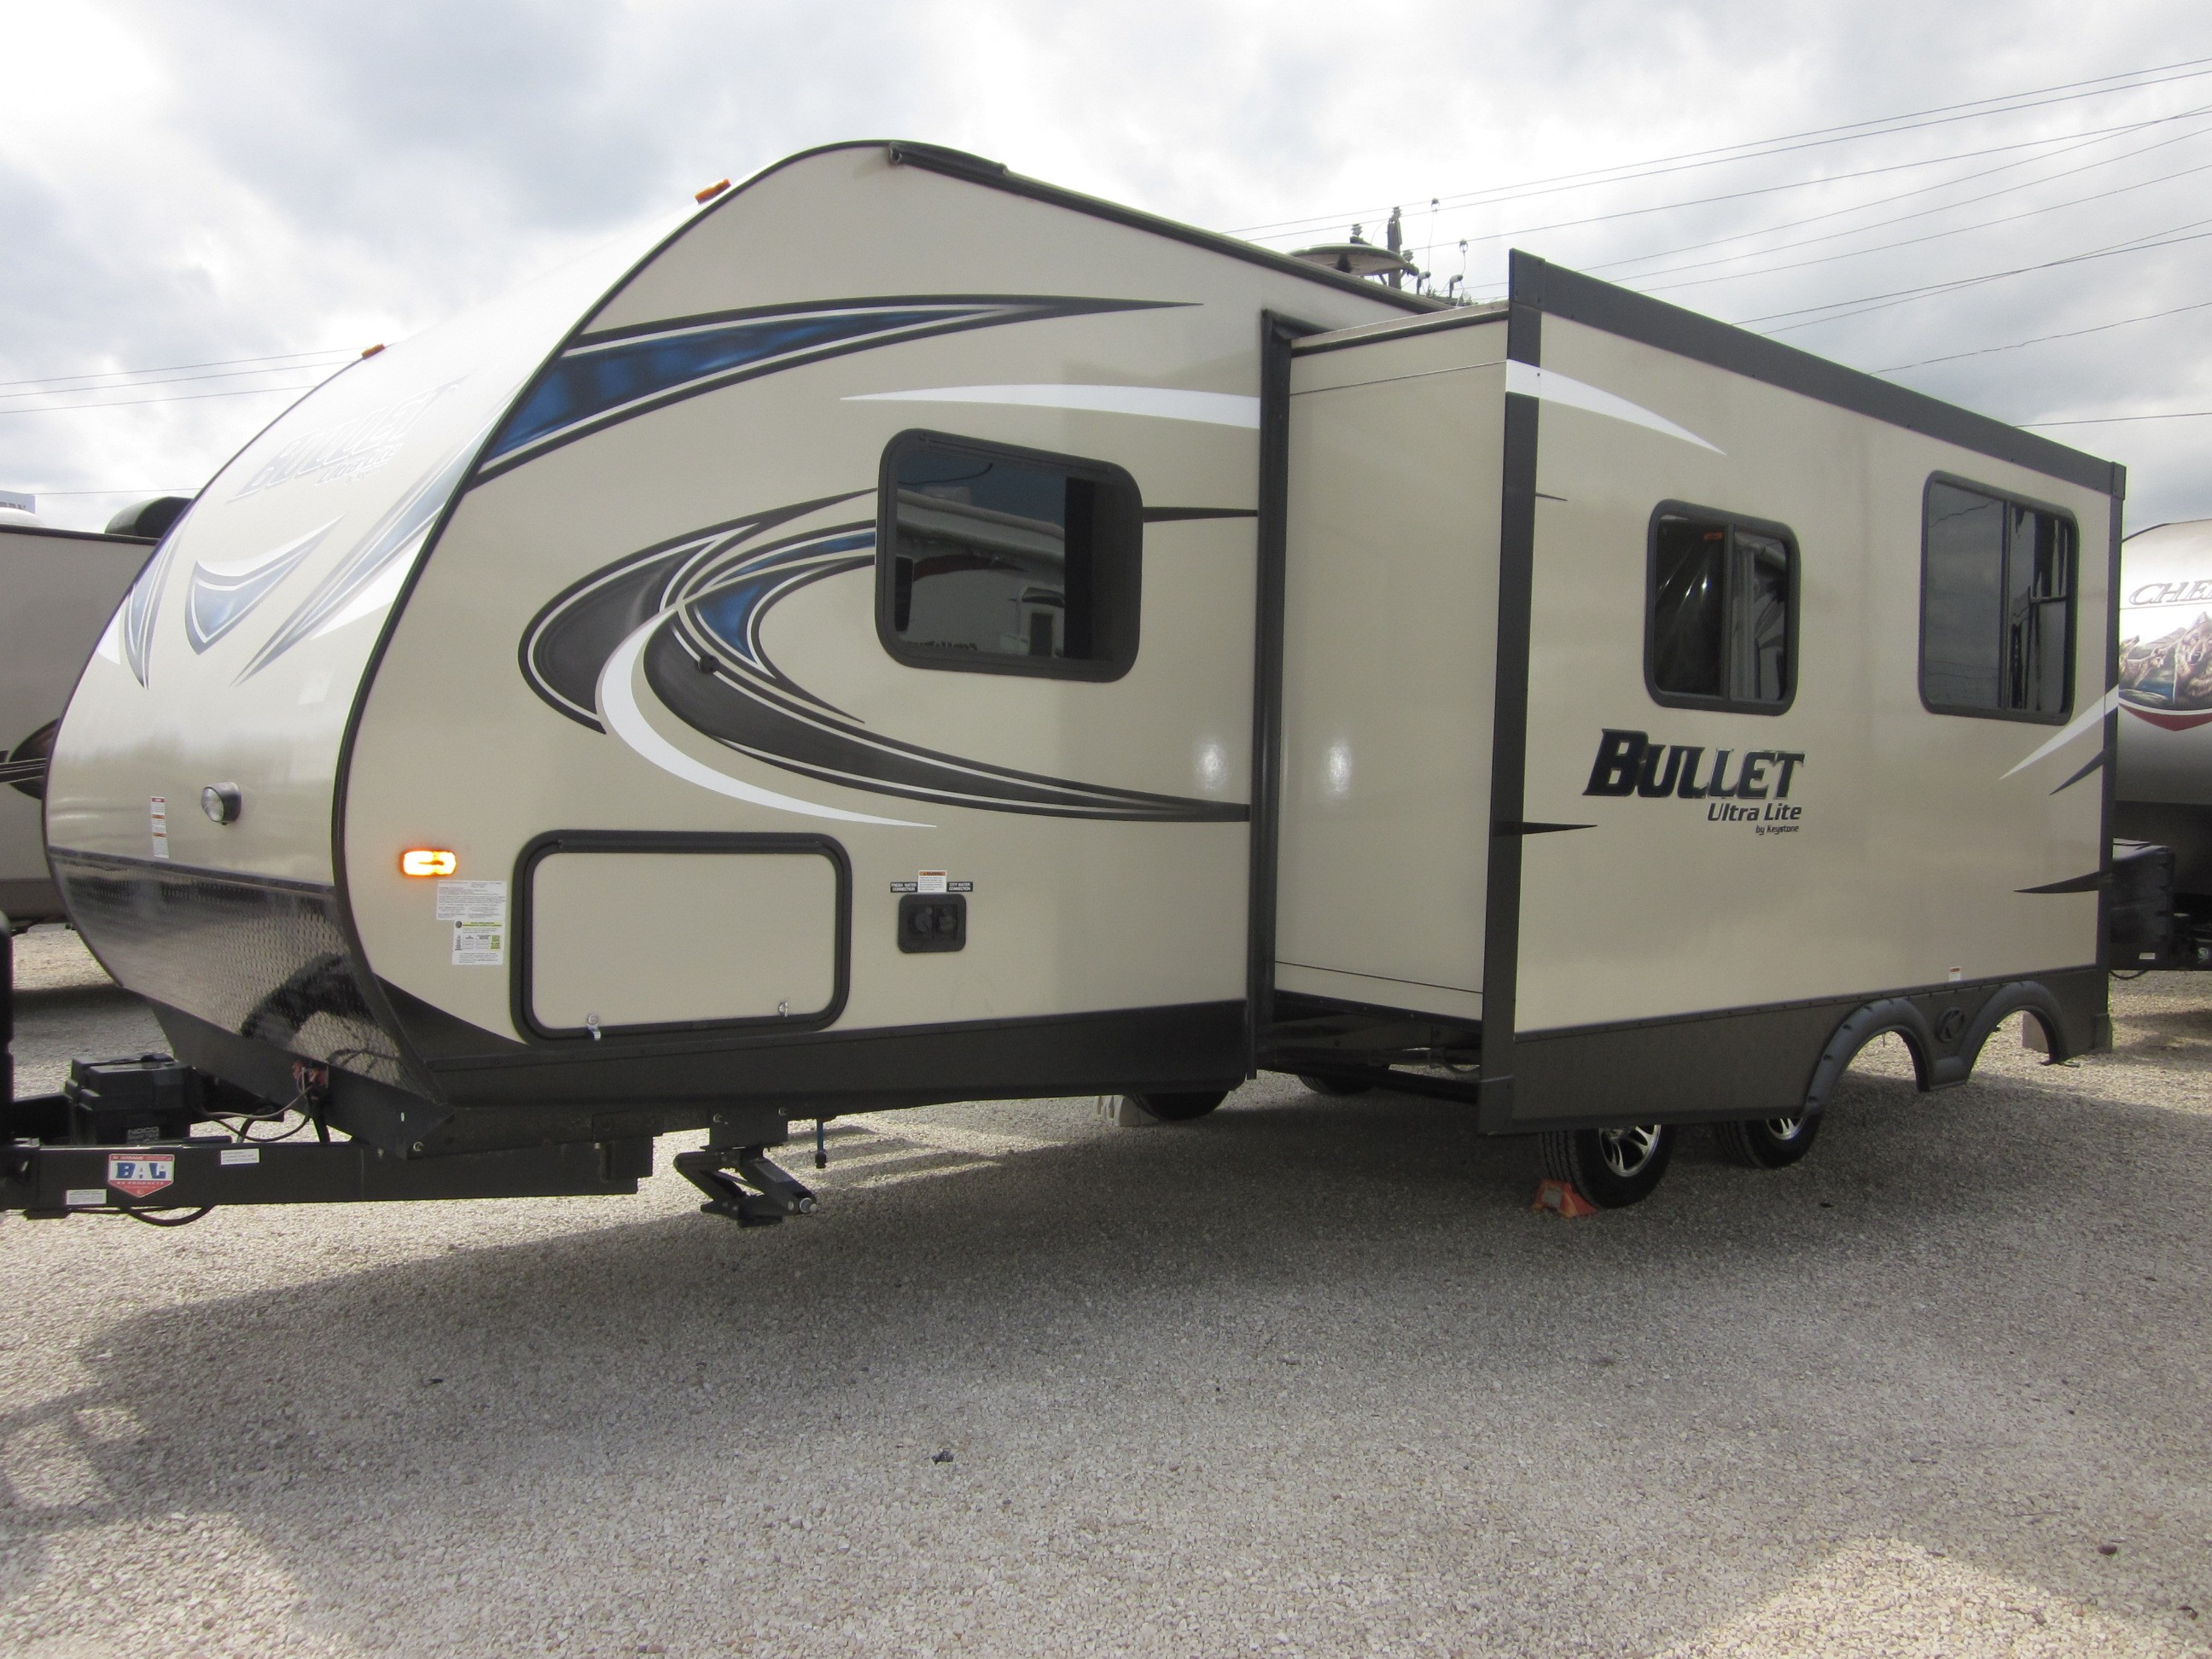 listings trailer bob trailers light mocha scott full ultra travel rockwood lighting drft rv